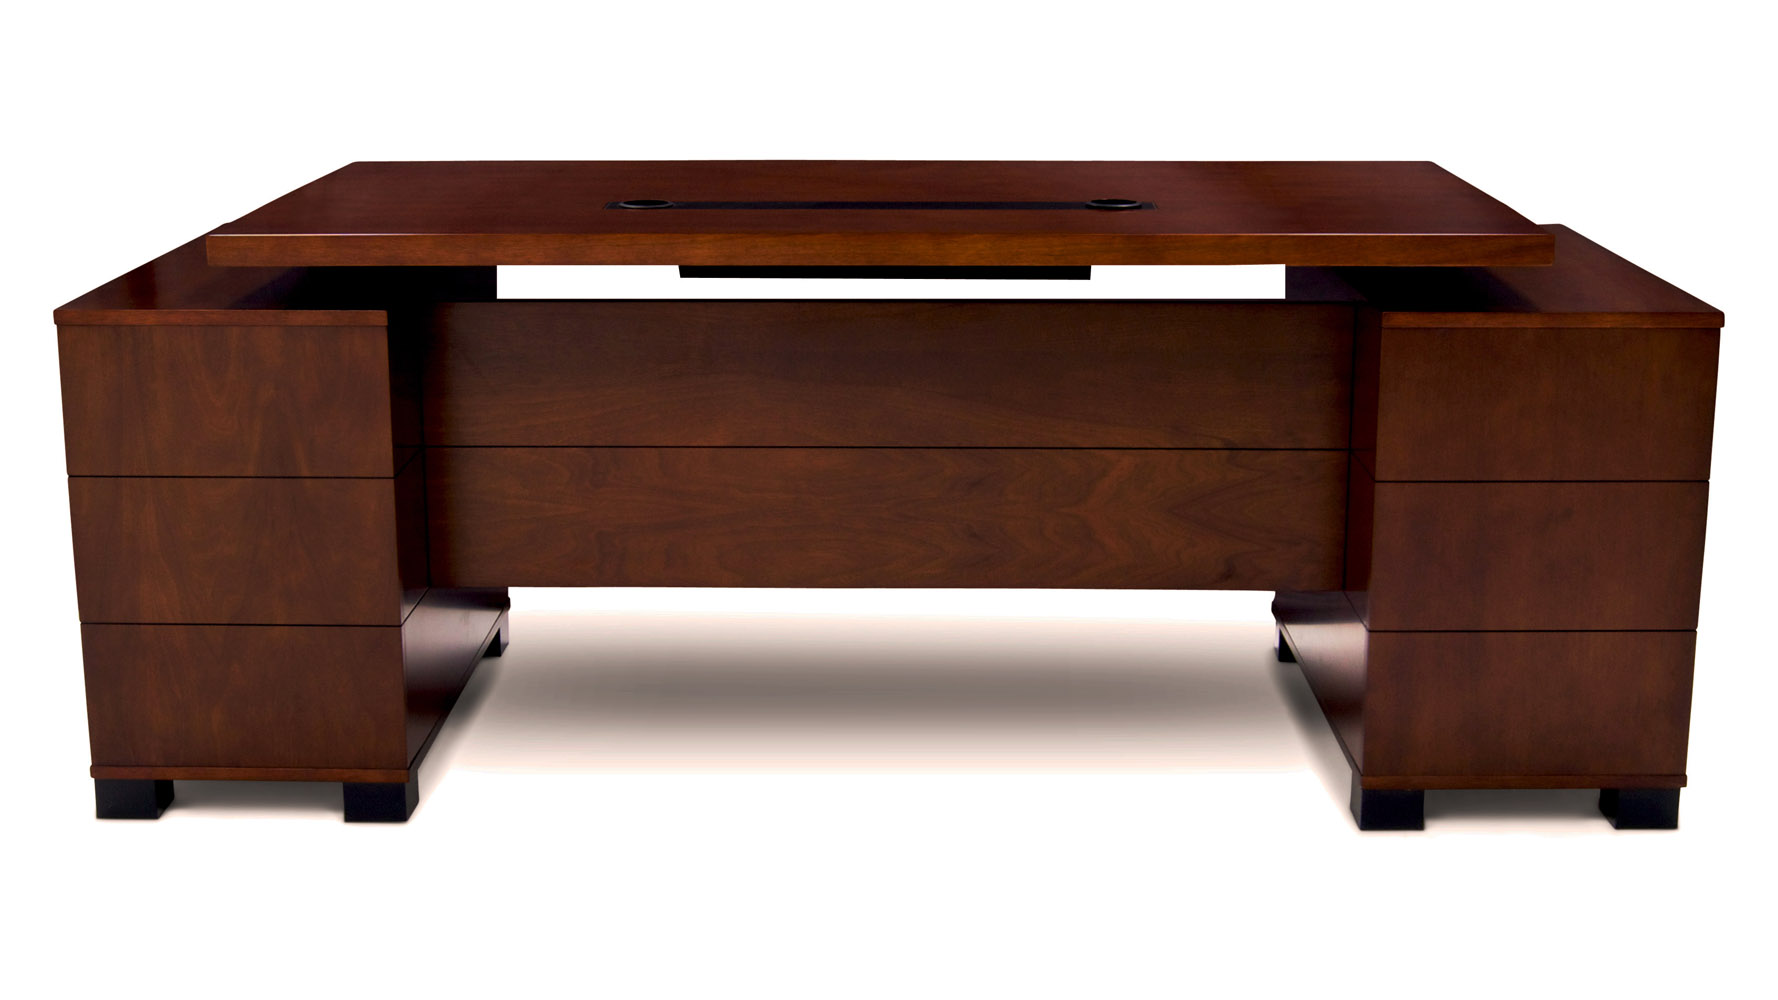 Ford Executive Modern Desk With Filing Cabinets Light Walnut Finish Zuri Furniture